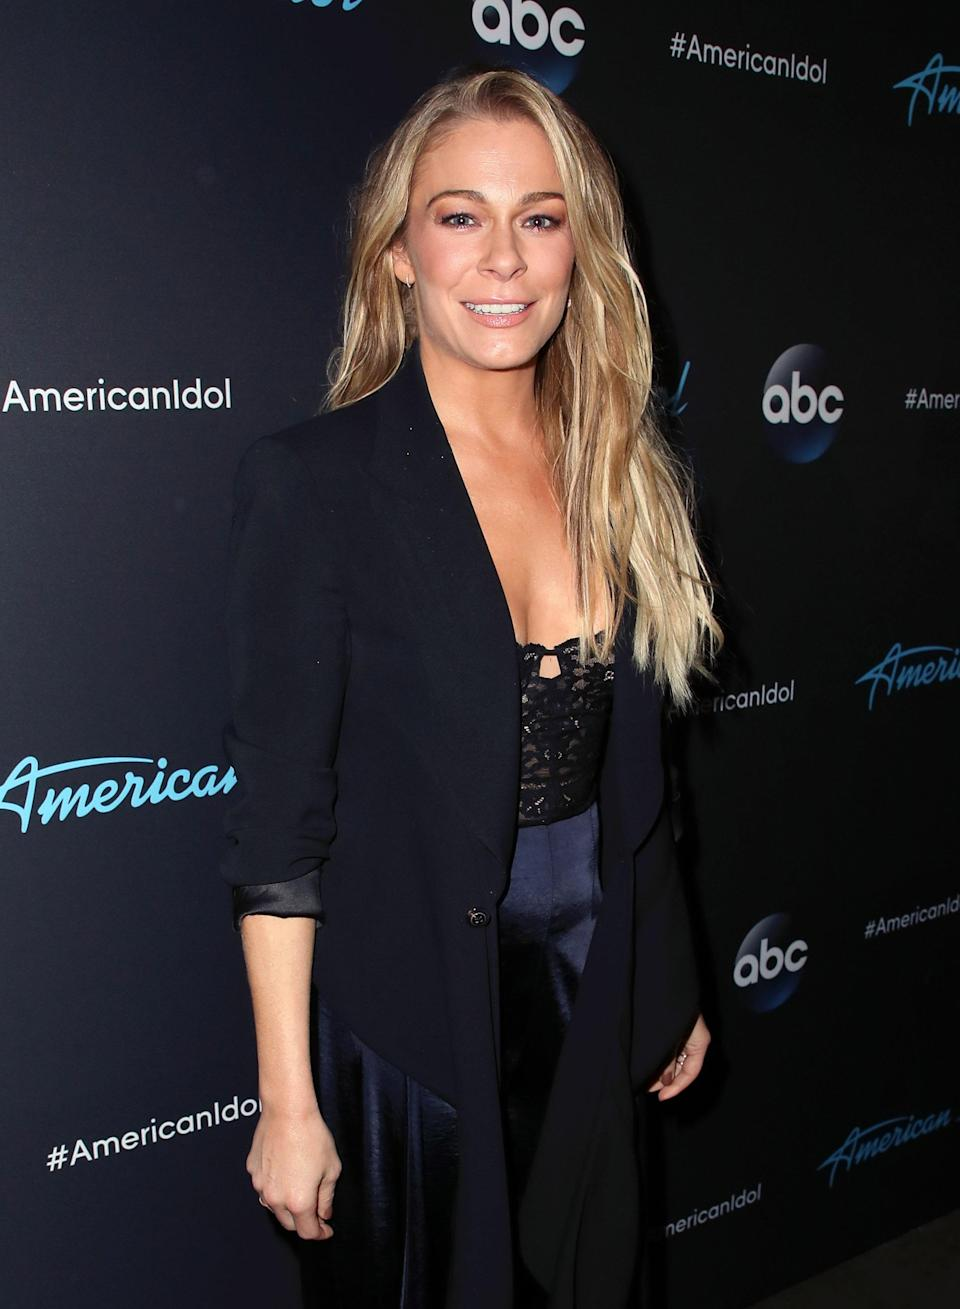 LeAnn Rimes at ABC's <em>American Idol</em> finale on May 21 in Los Angeles. (Photo: David Livingston/Getty Images)